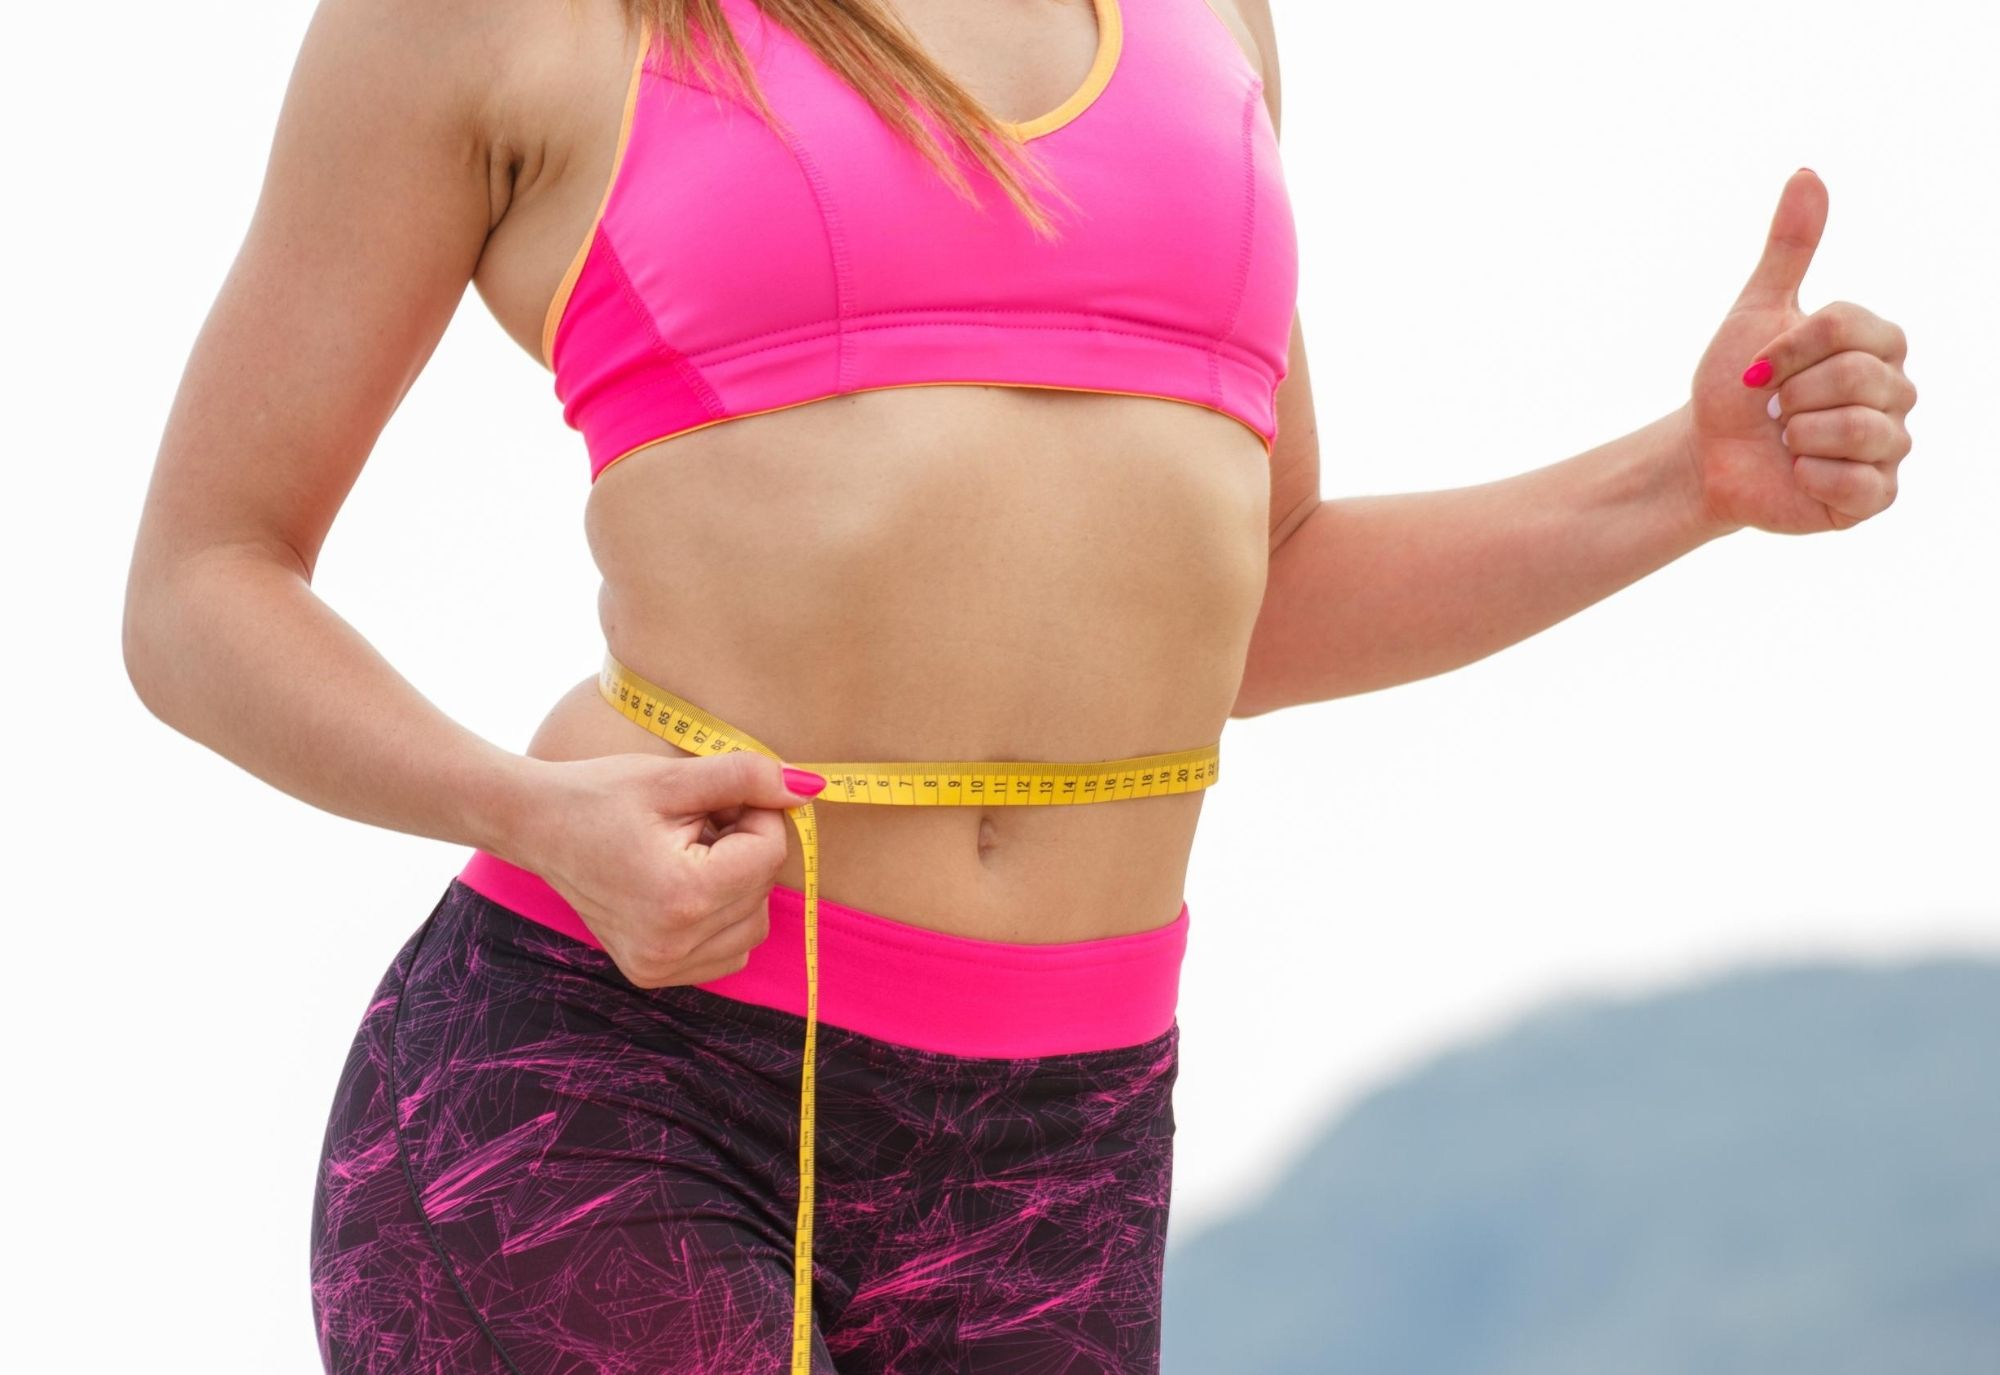 Slimming-clothes, are they effective?